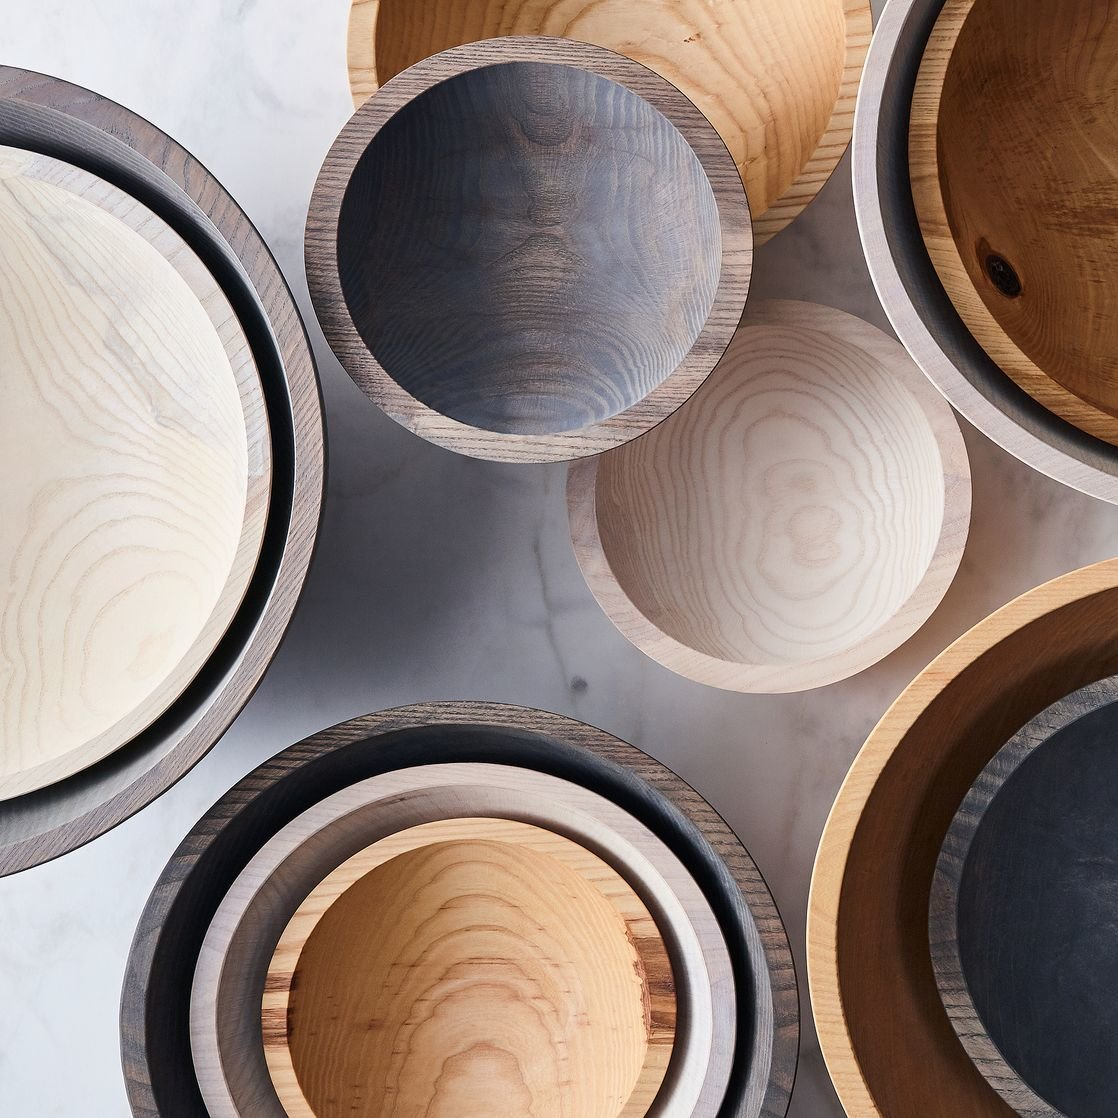 Farmhouse Pottery Handcrafted Wood Bowls By Food52 Dwell